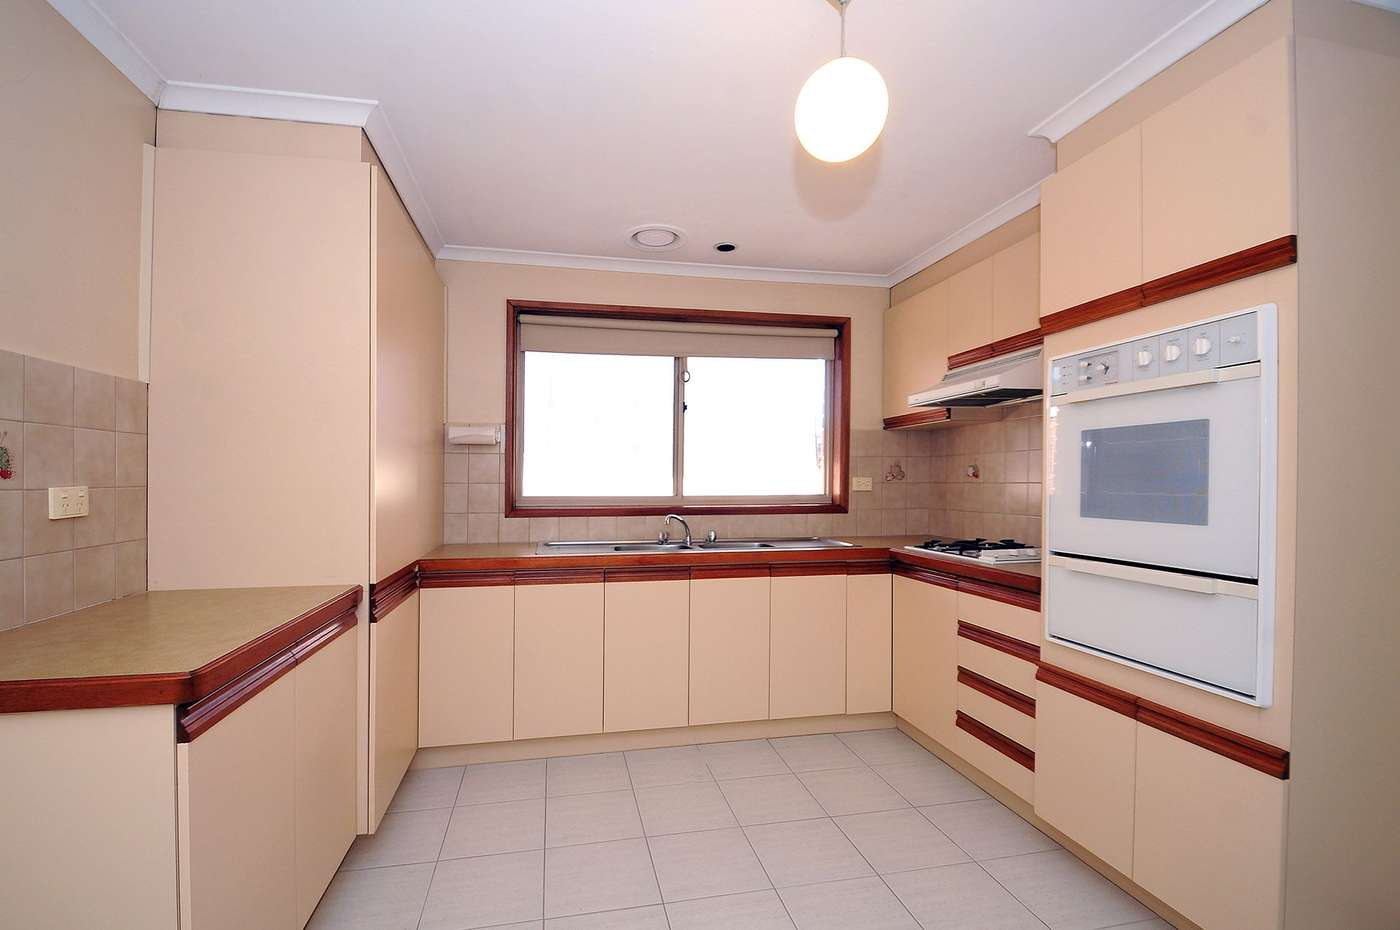 Main view of Homely unit listing, 2/738 Waverley Road, Glen Waverley, VIC 3150